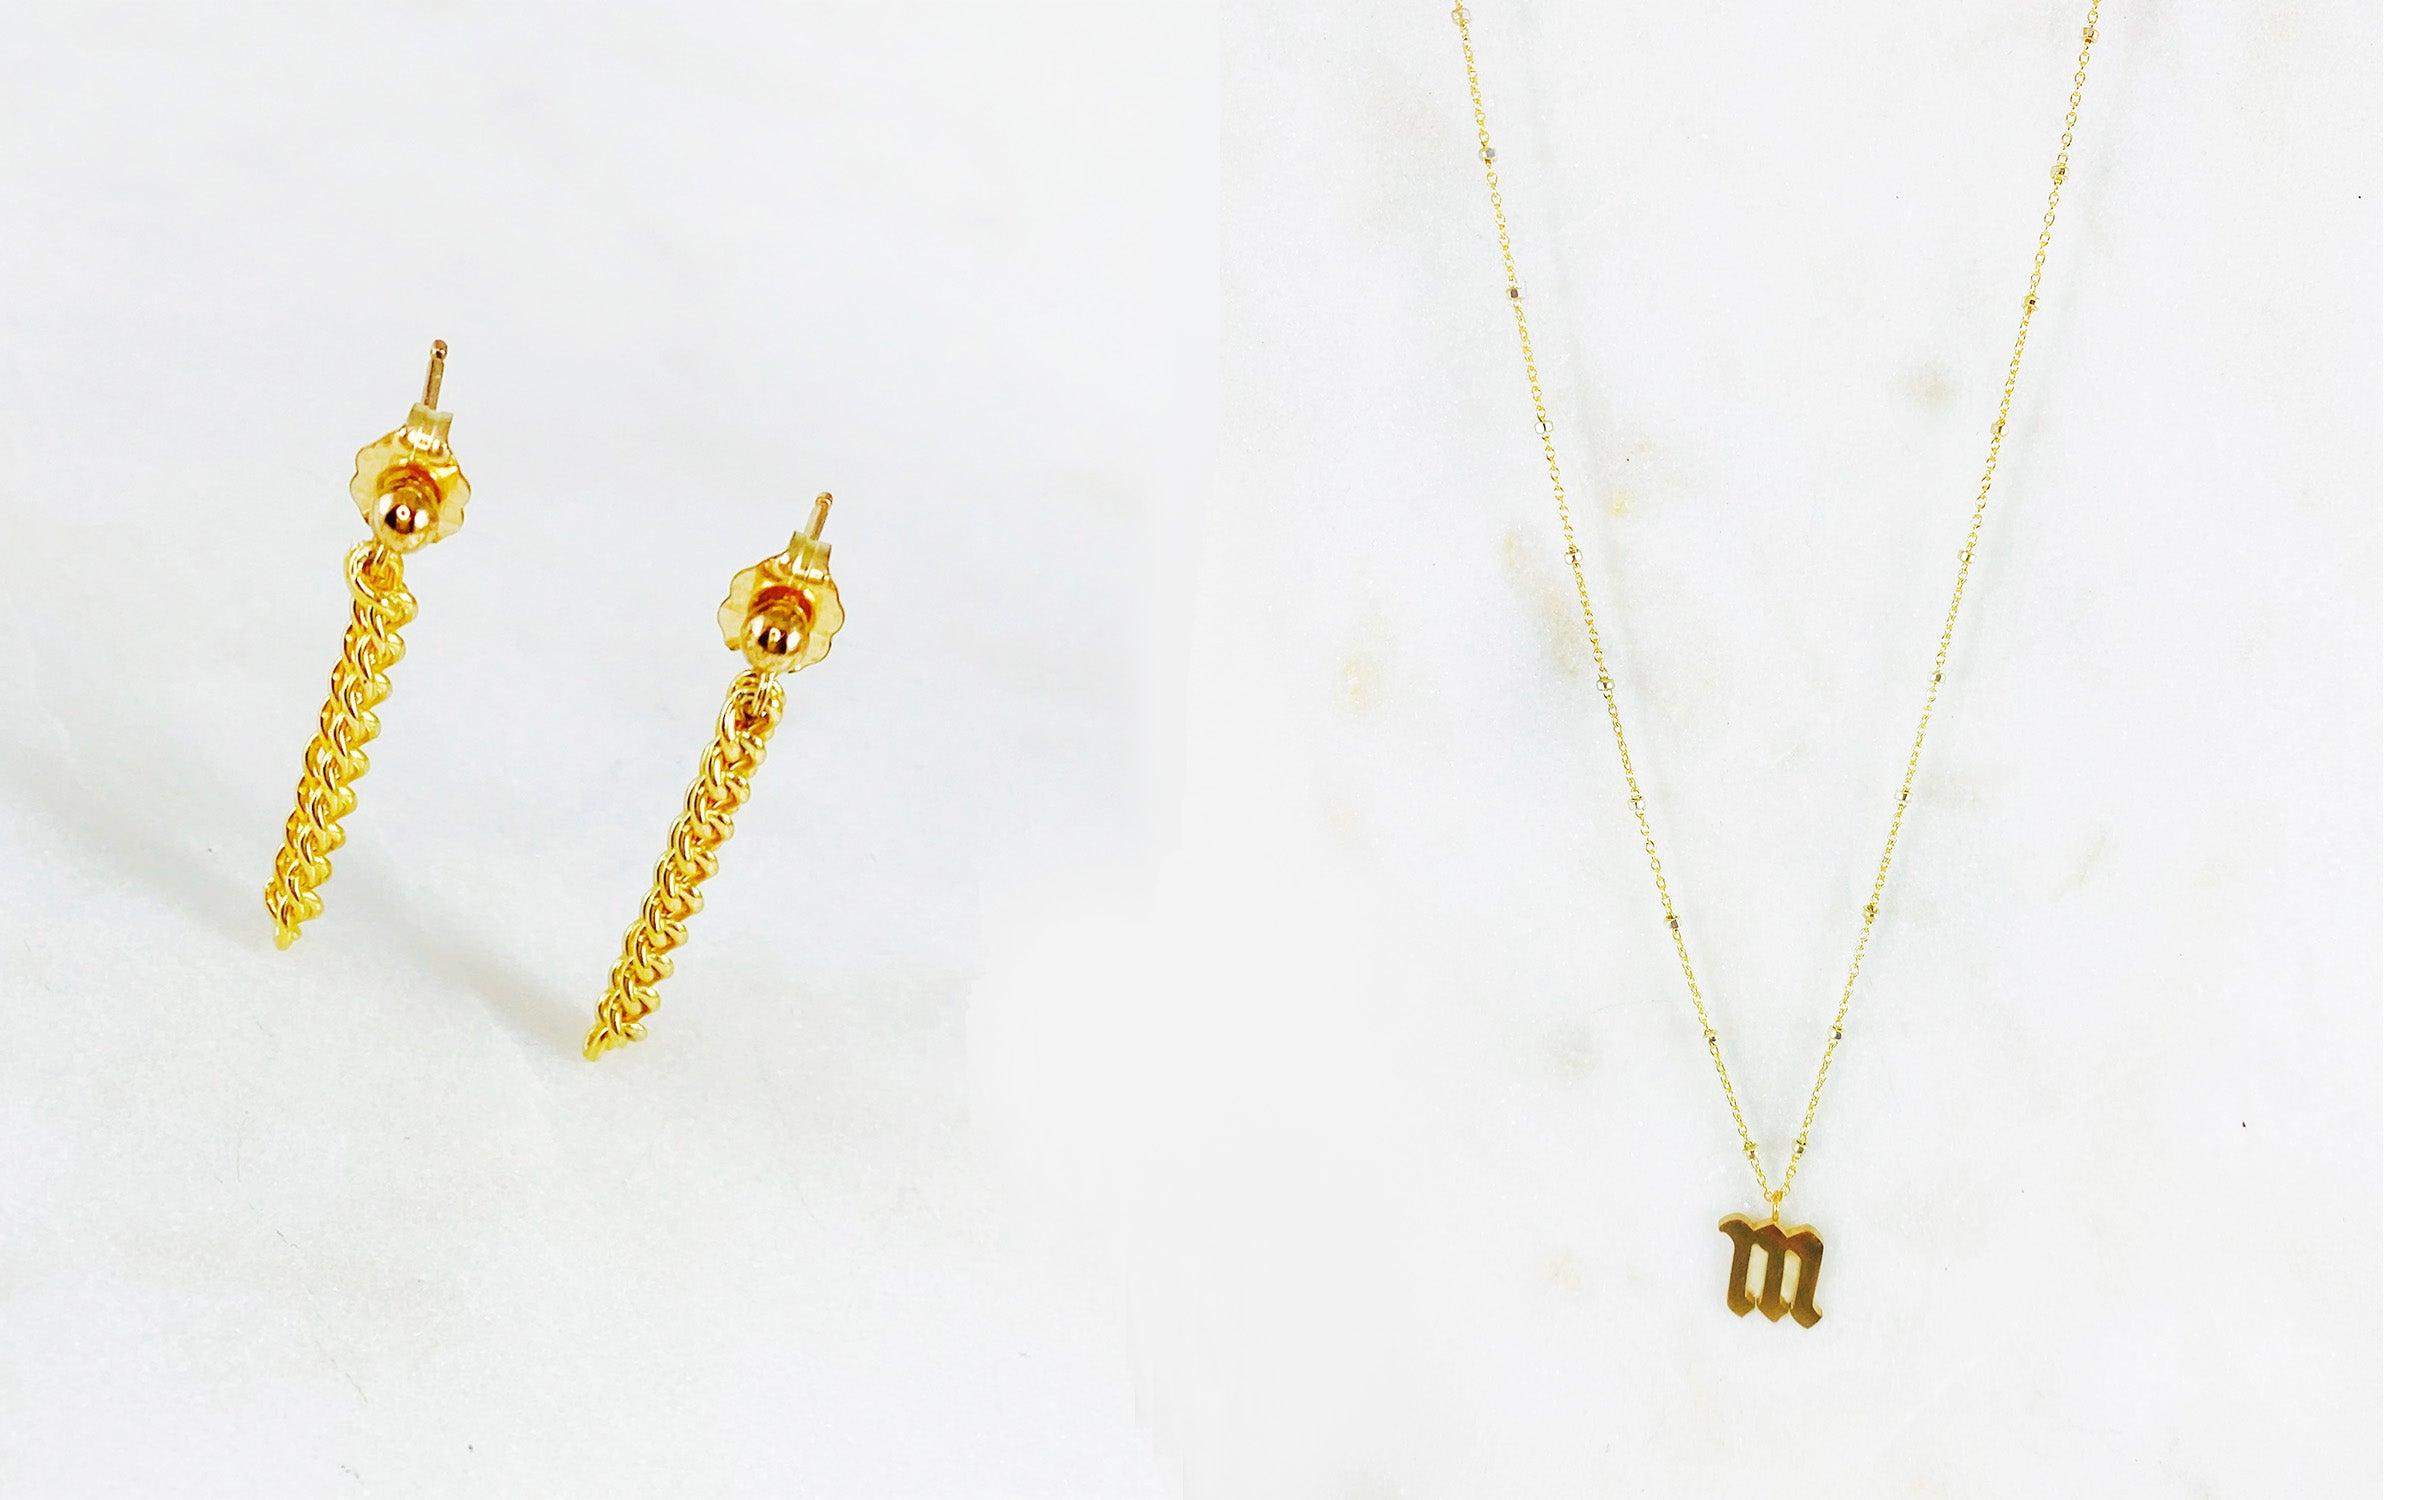 Golde earrings and initial necklace